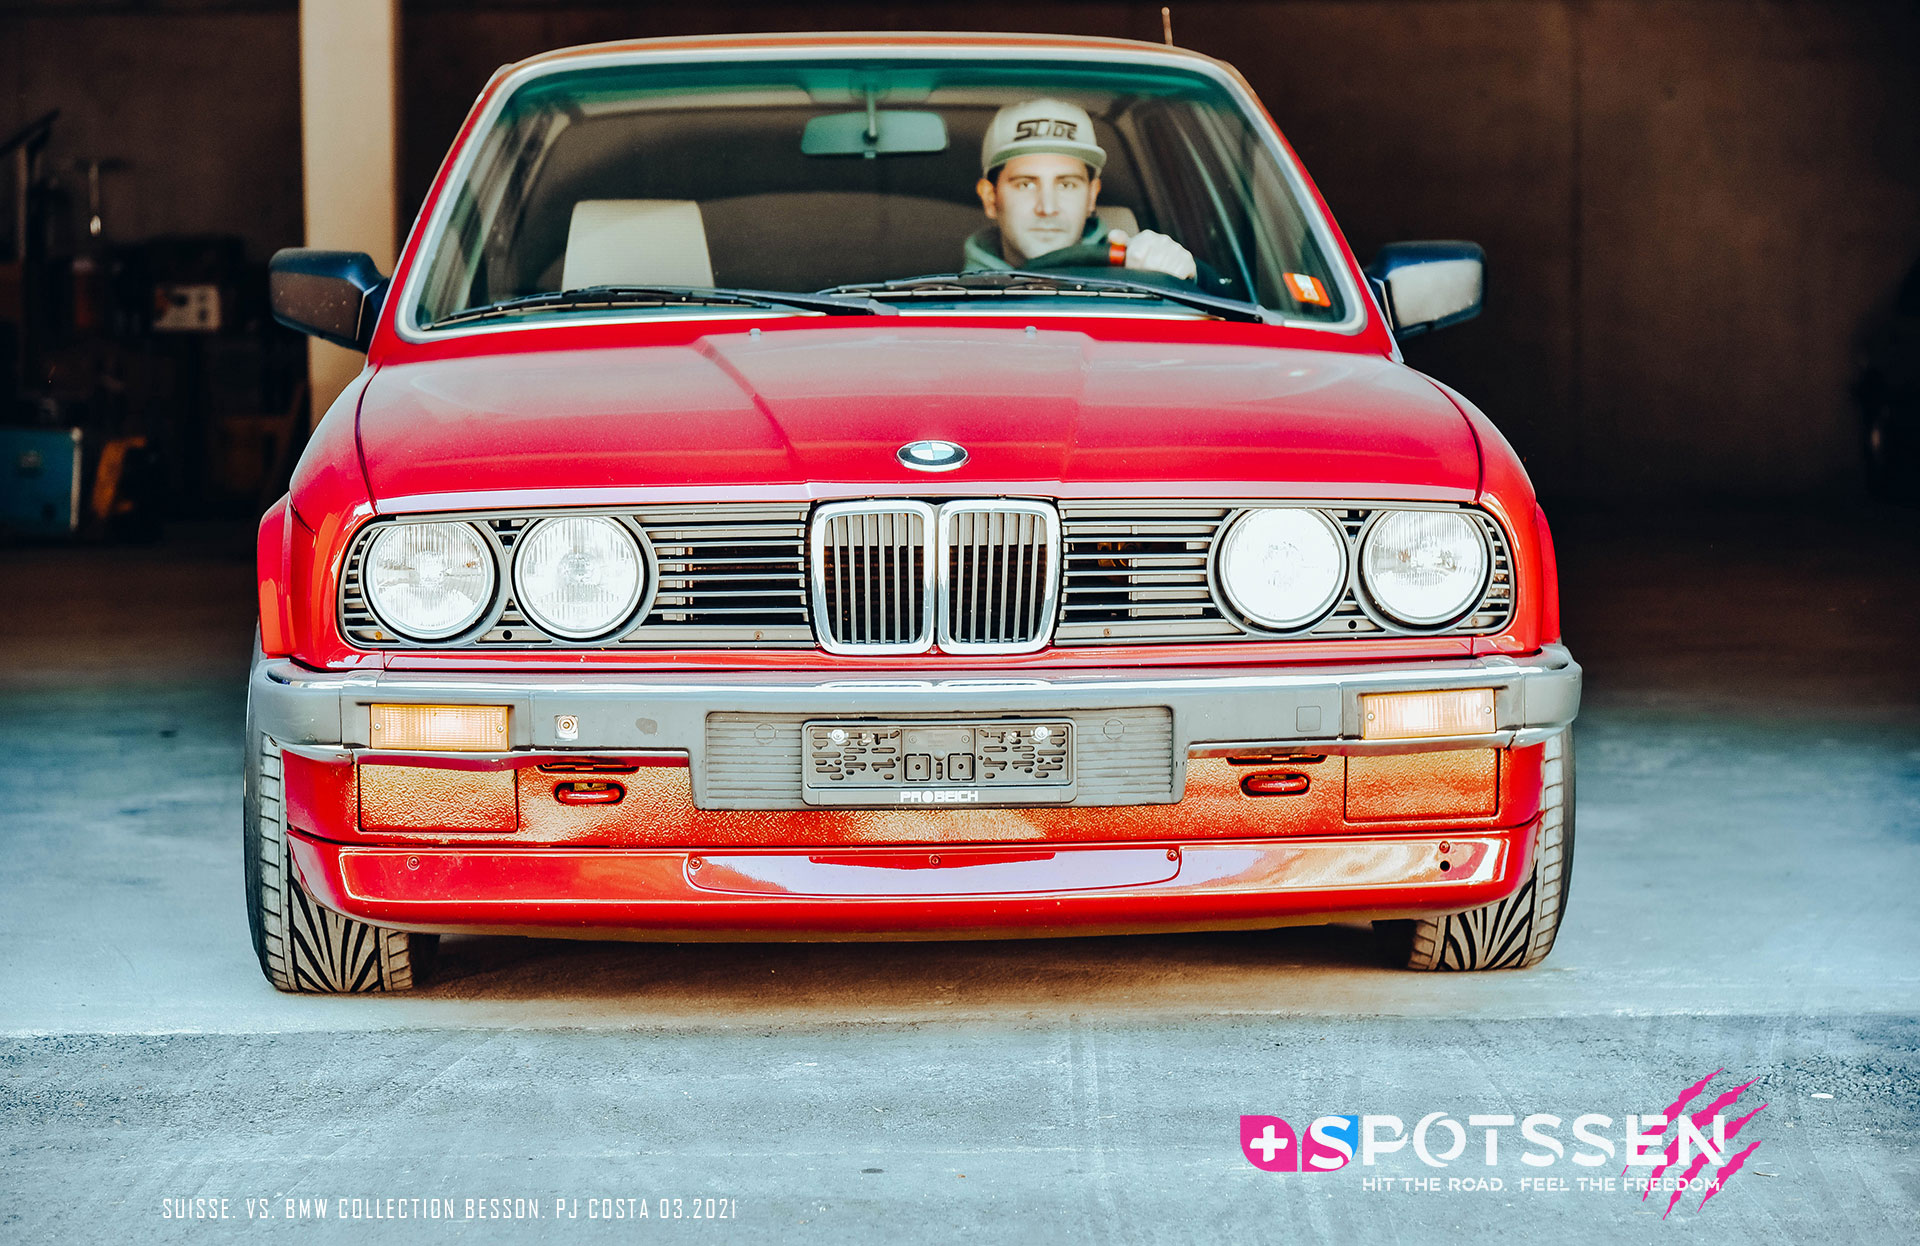 2021, bmw, collection besson, 325e